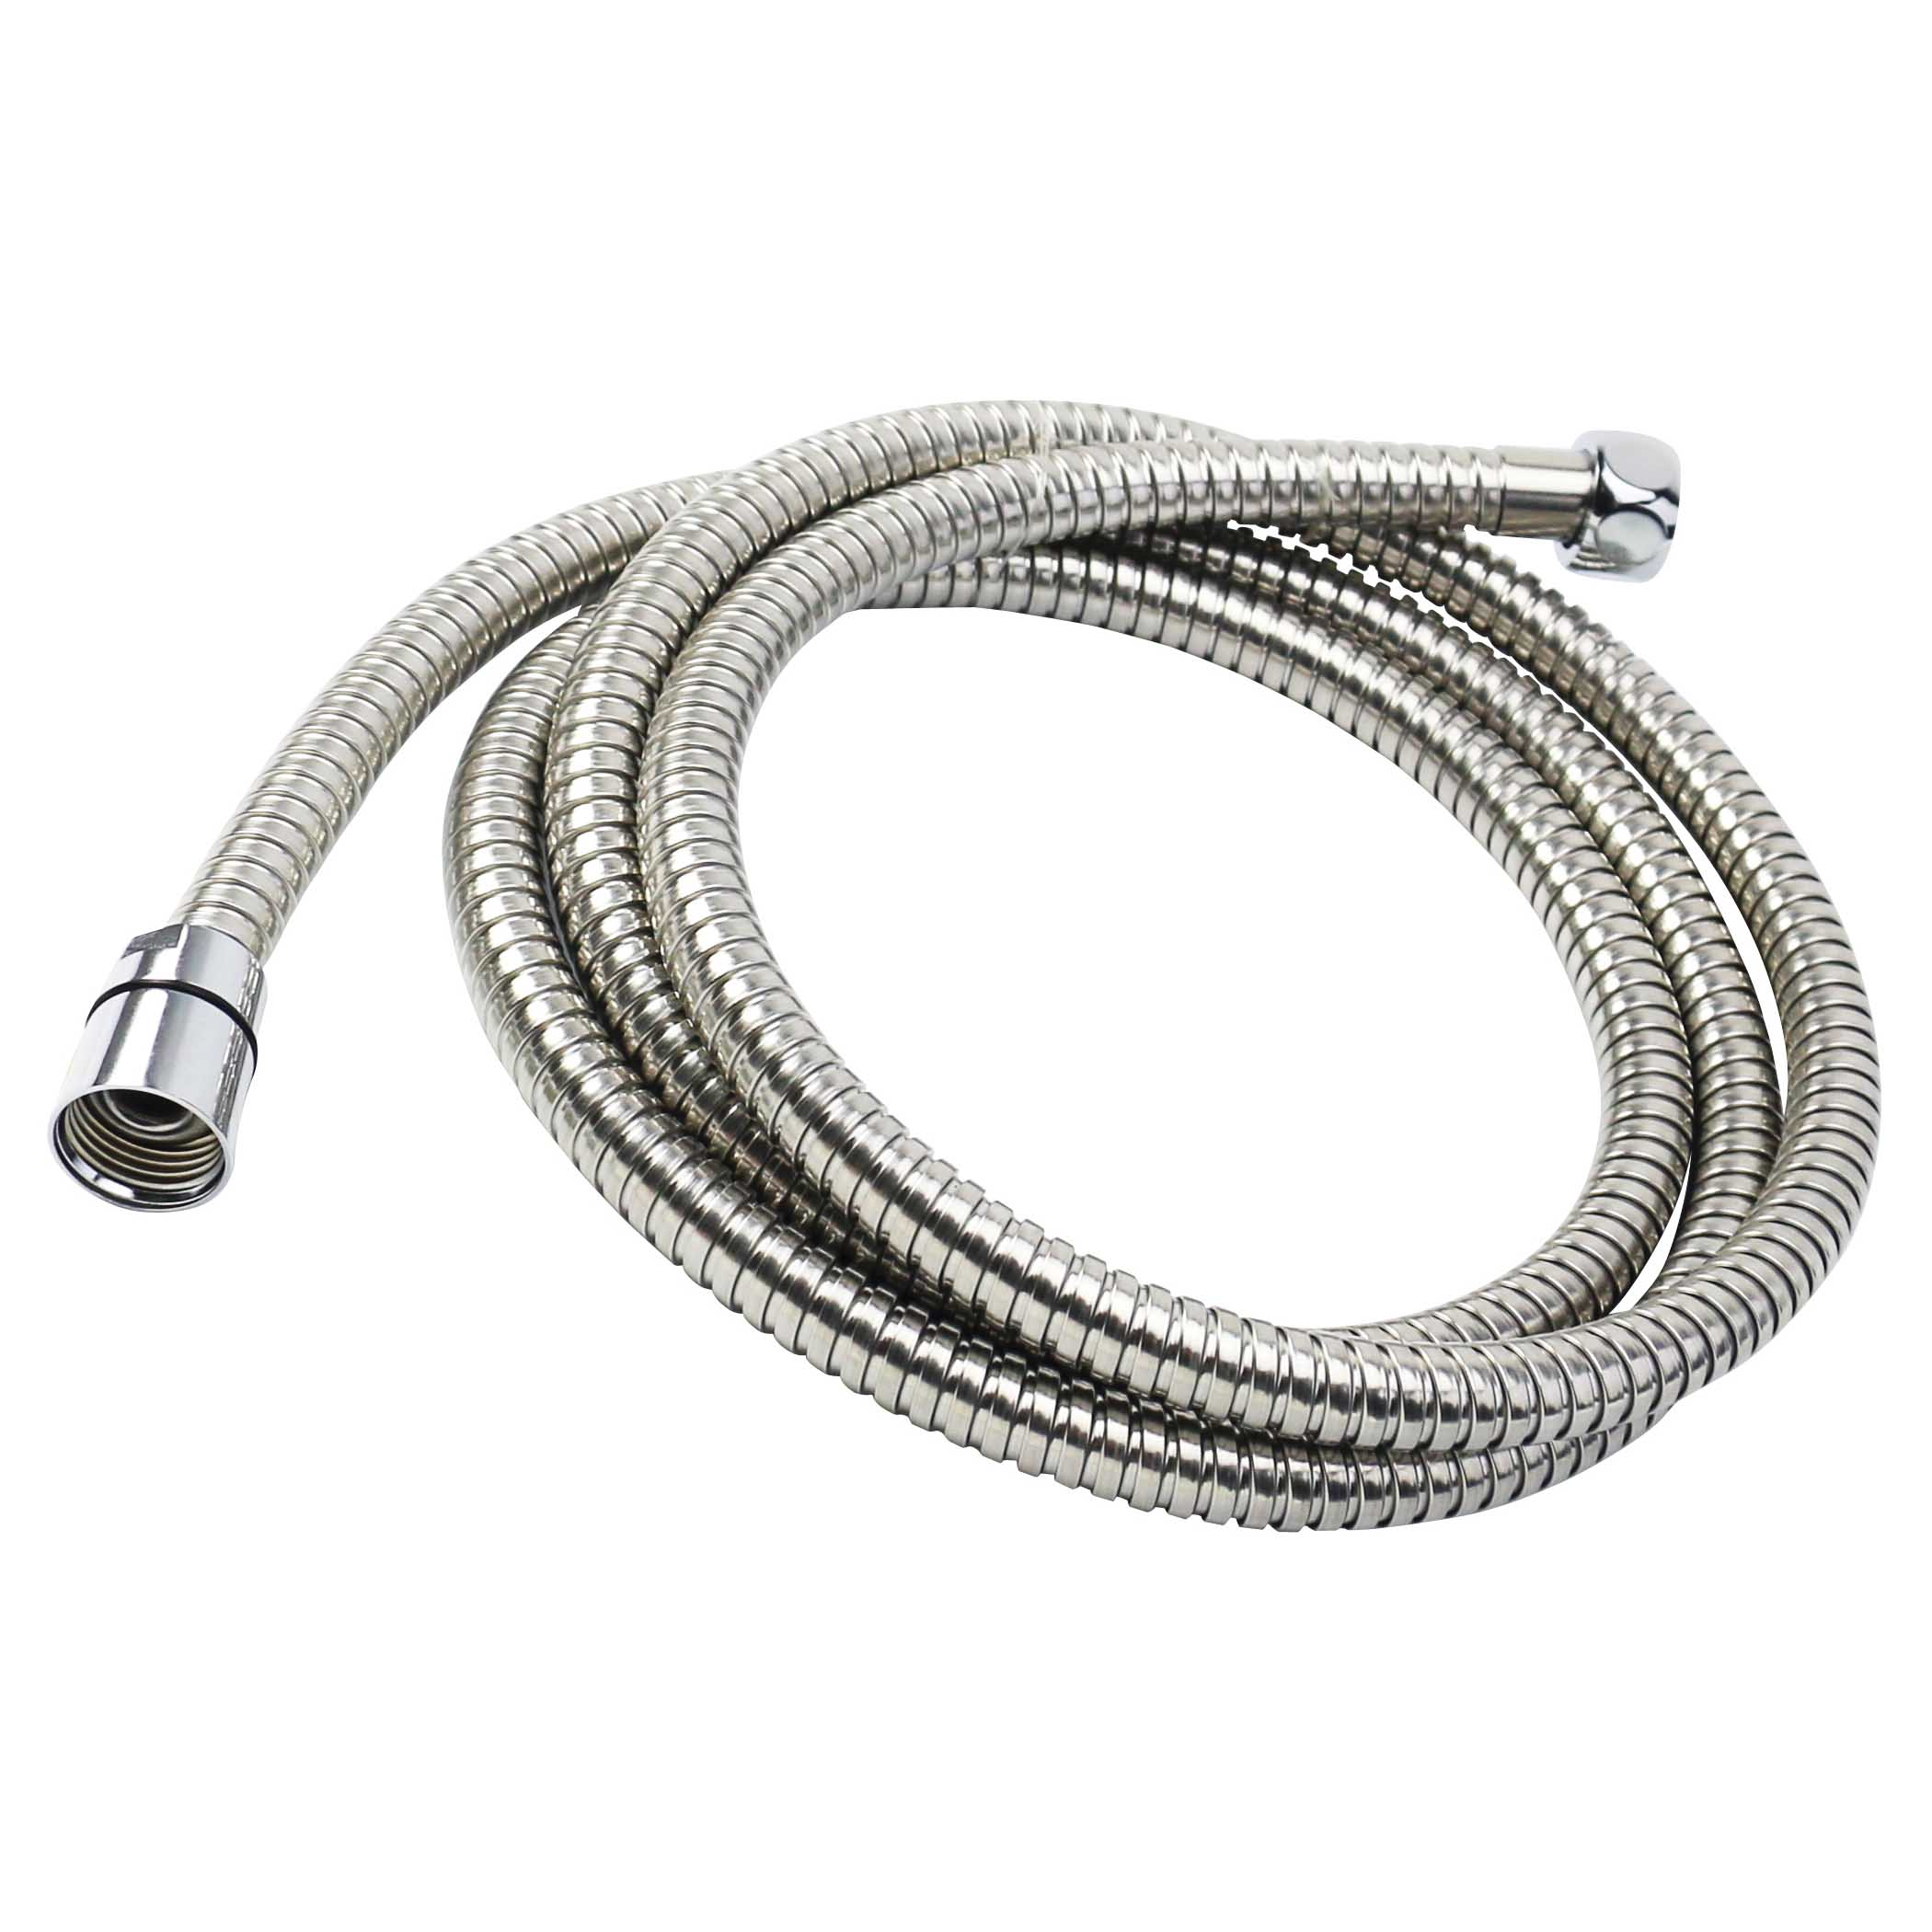 Picture of Boston Harbor 105733CP Shower Hose, 60 to 82 in L Hose, Stainless Steel, Chrome